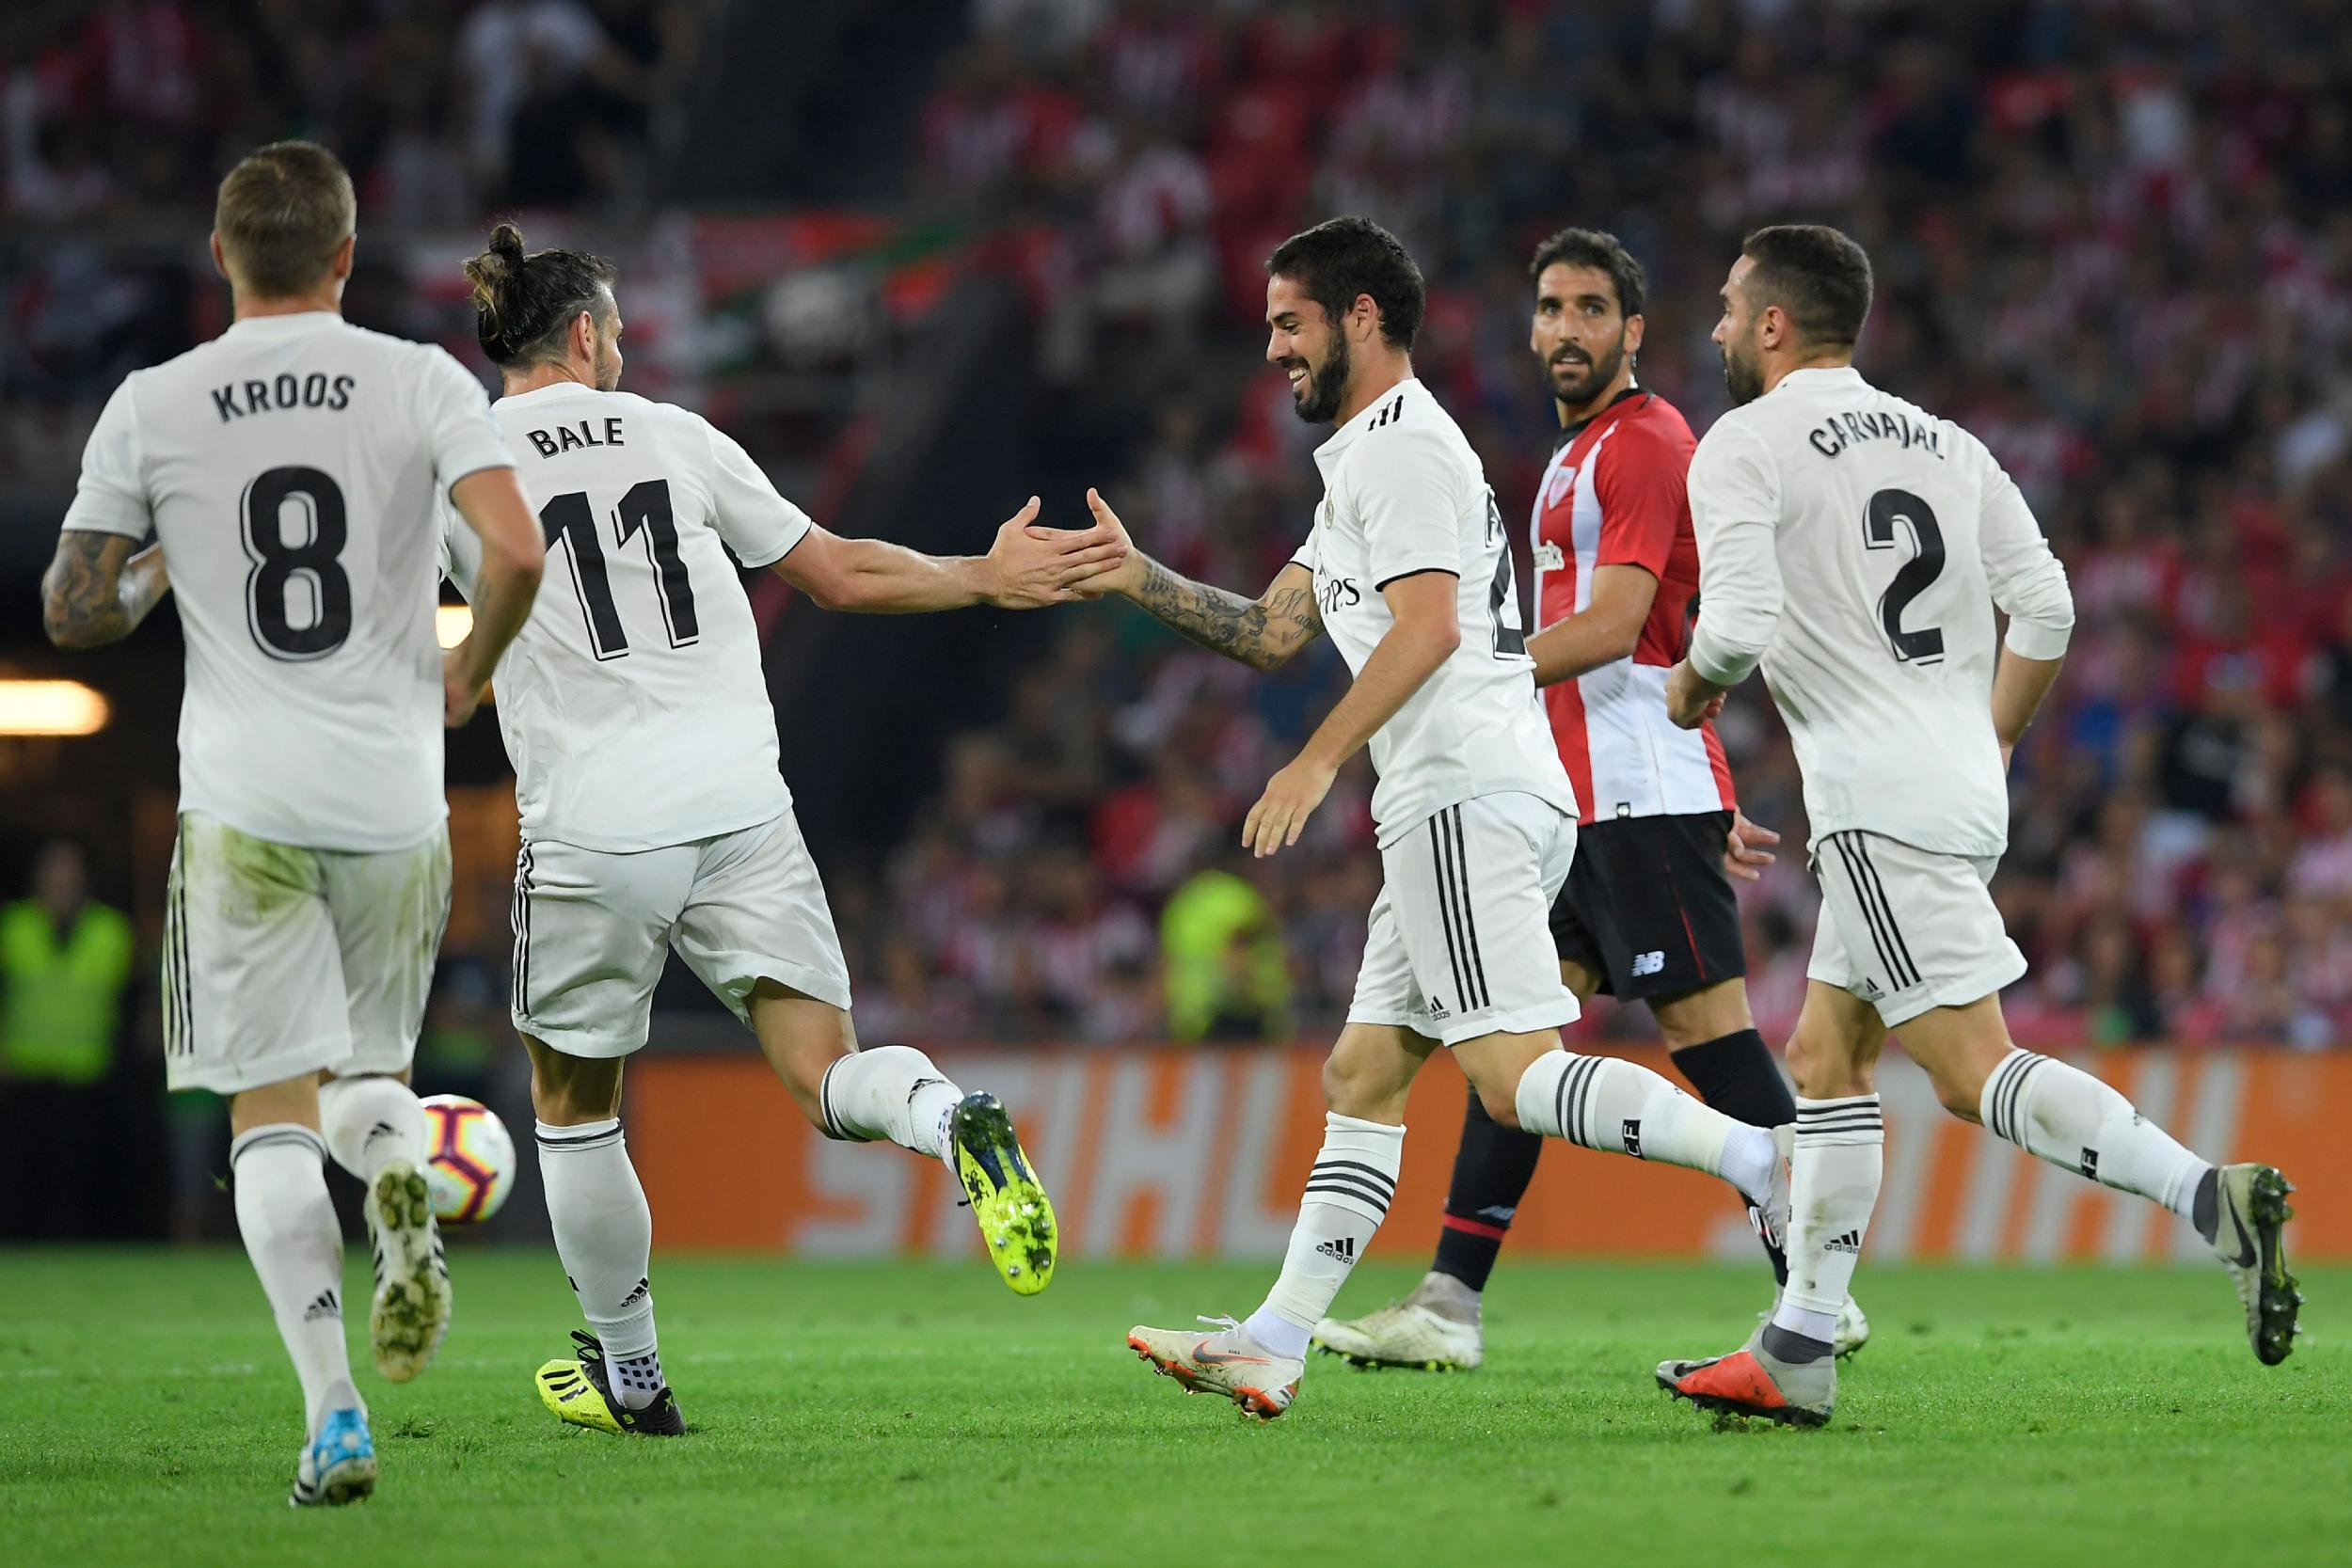 soi-keo-athletic-bilbao-vs-real-madrid-luc-19h-ngay-5-7-2020-2